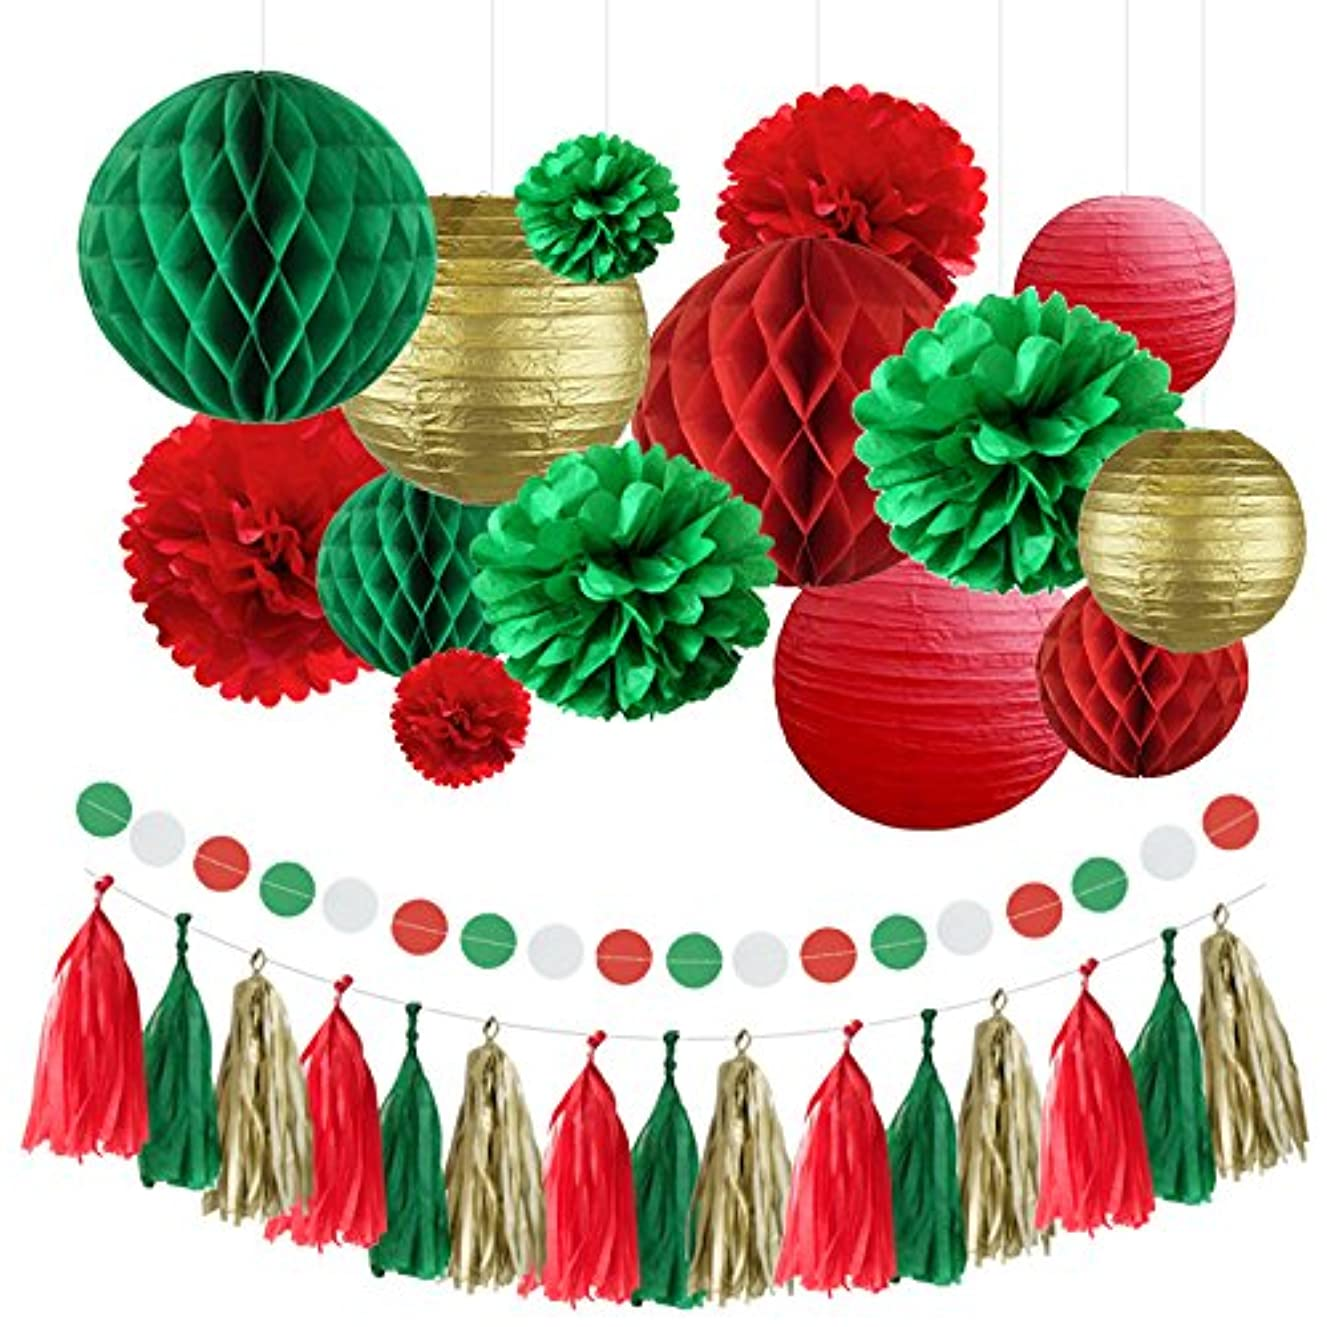 Christmas Decoration Set - Gorgeous 30pcs Assorted Paper Party Decorations Paper Lanterns Flower Honeycomb Ball Tissue Tassel Polka Dot Paper Garland for Fiesta Wedding Birthday Christmas Baby Shower